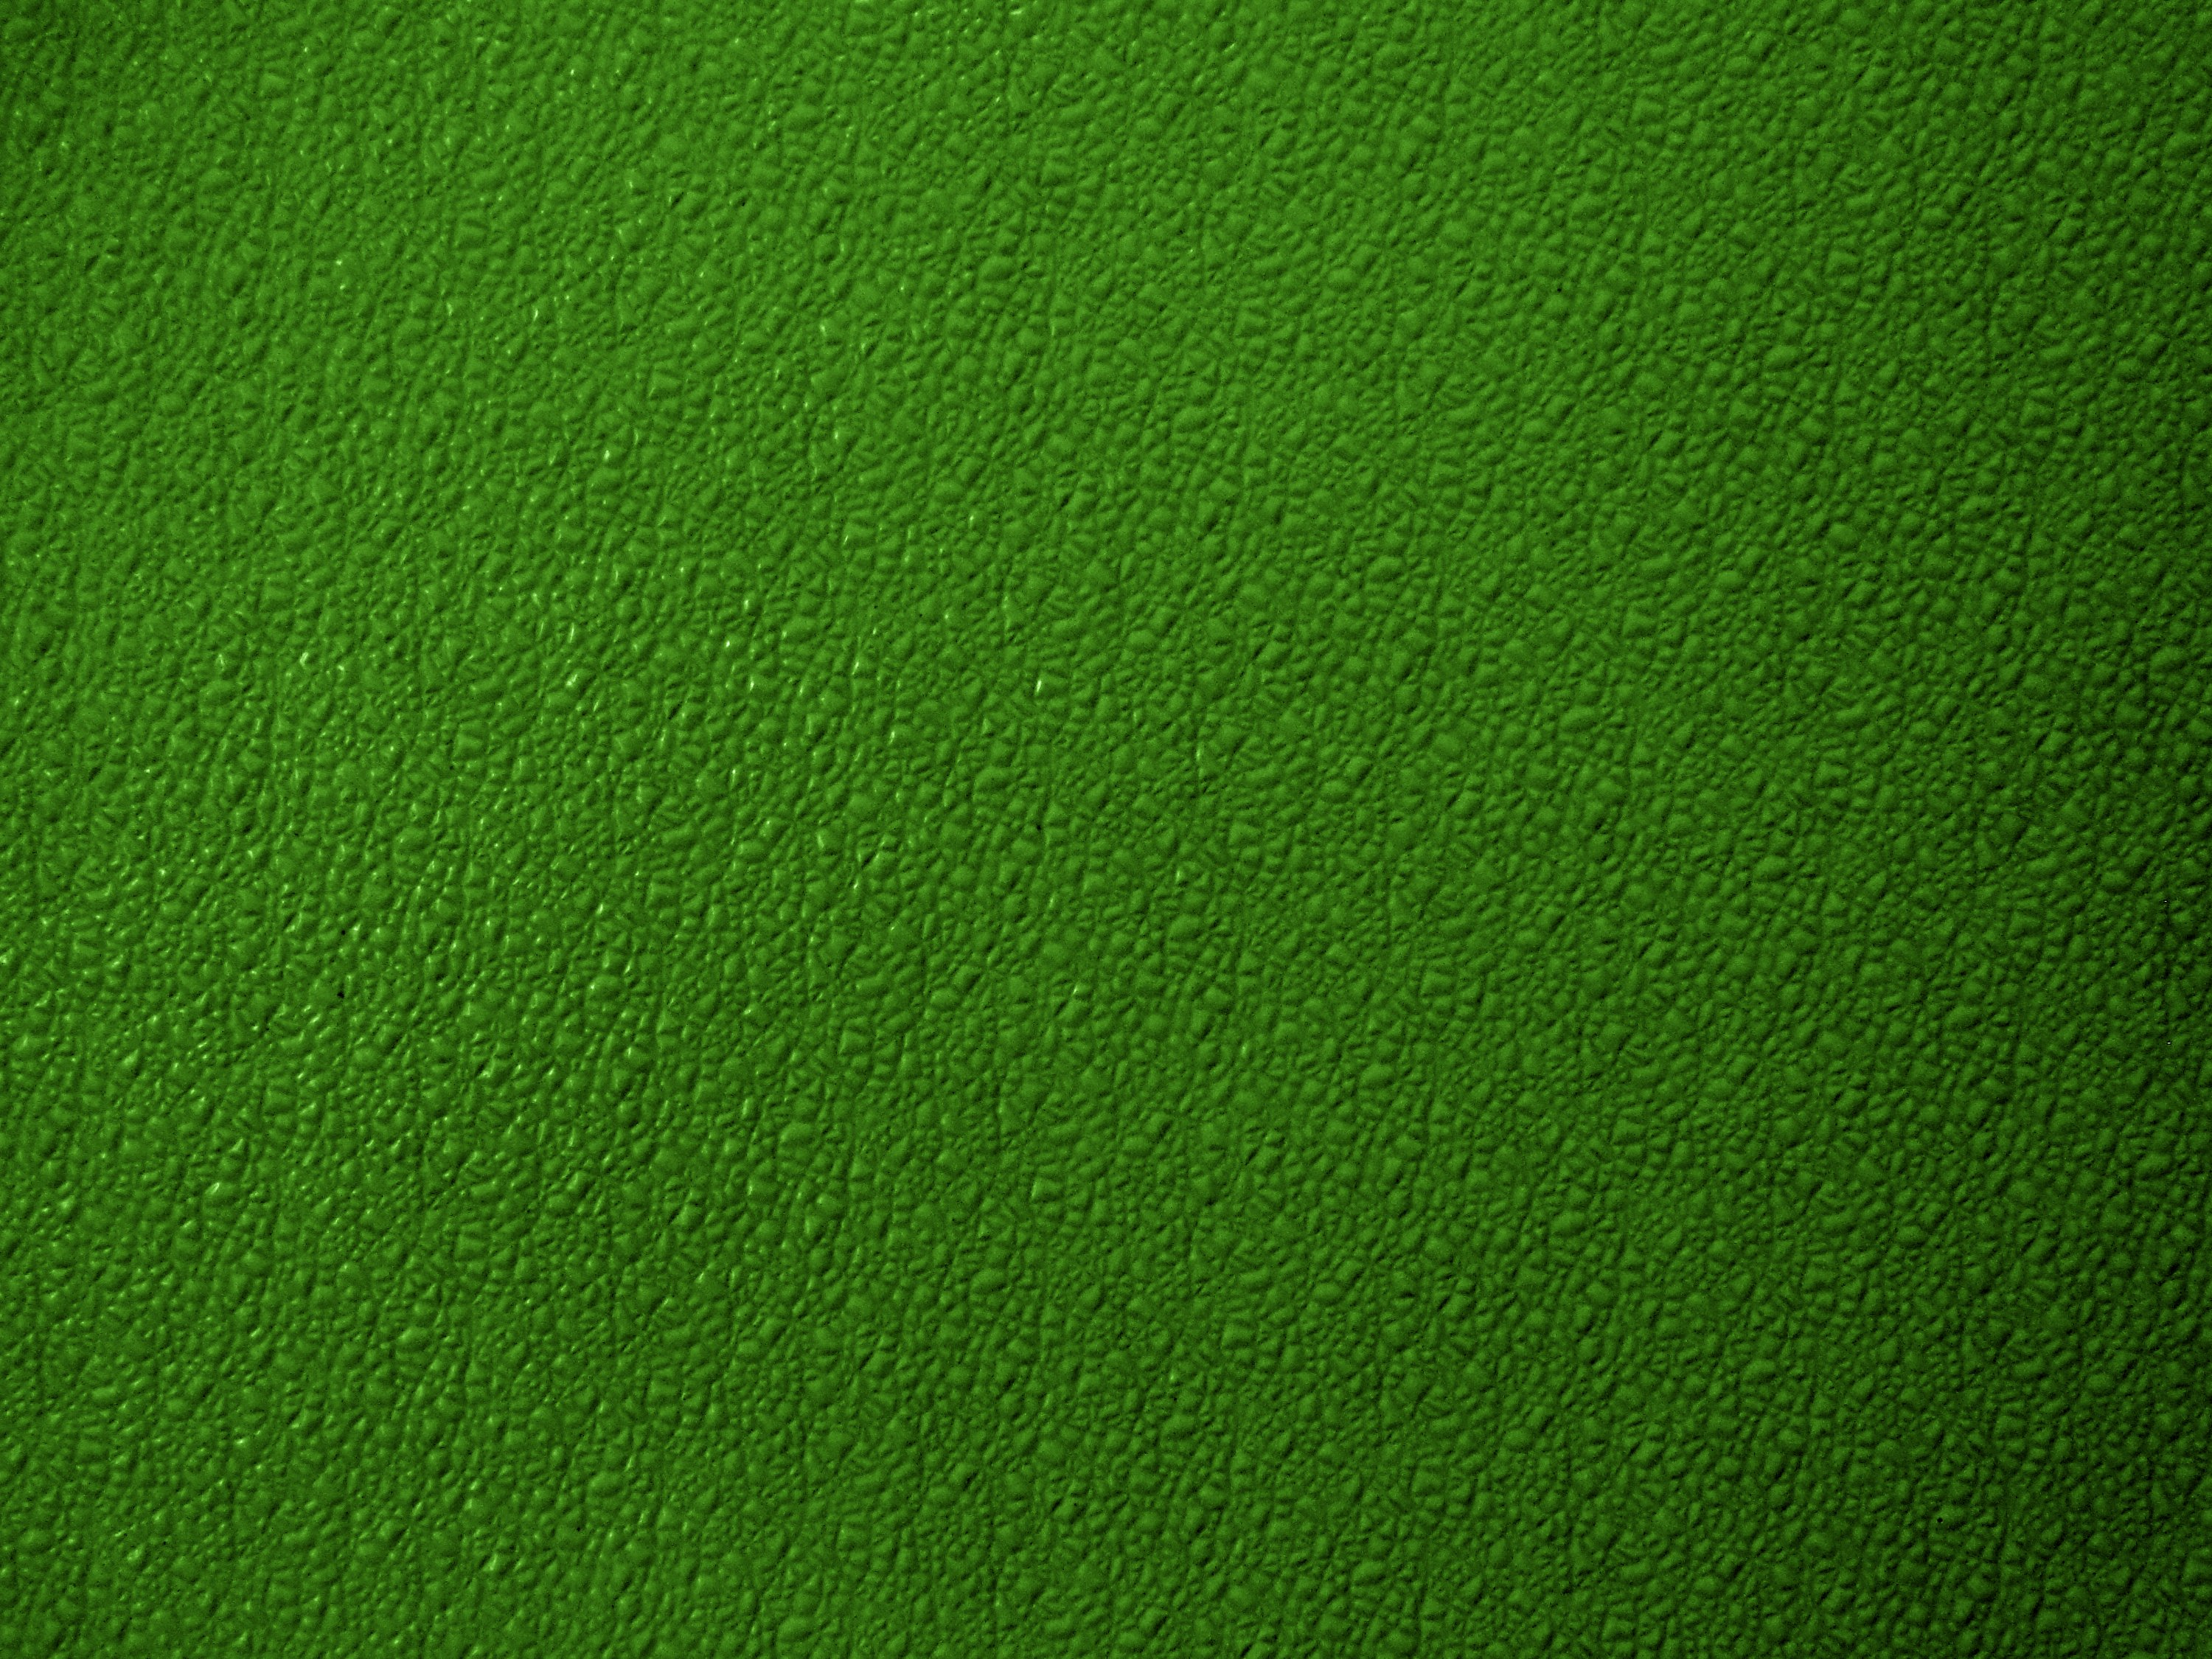 Bumpy Green Plastic Texture Picture | Free Photograph | Photos ...